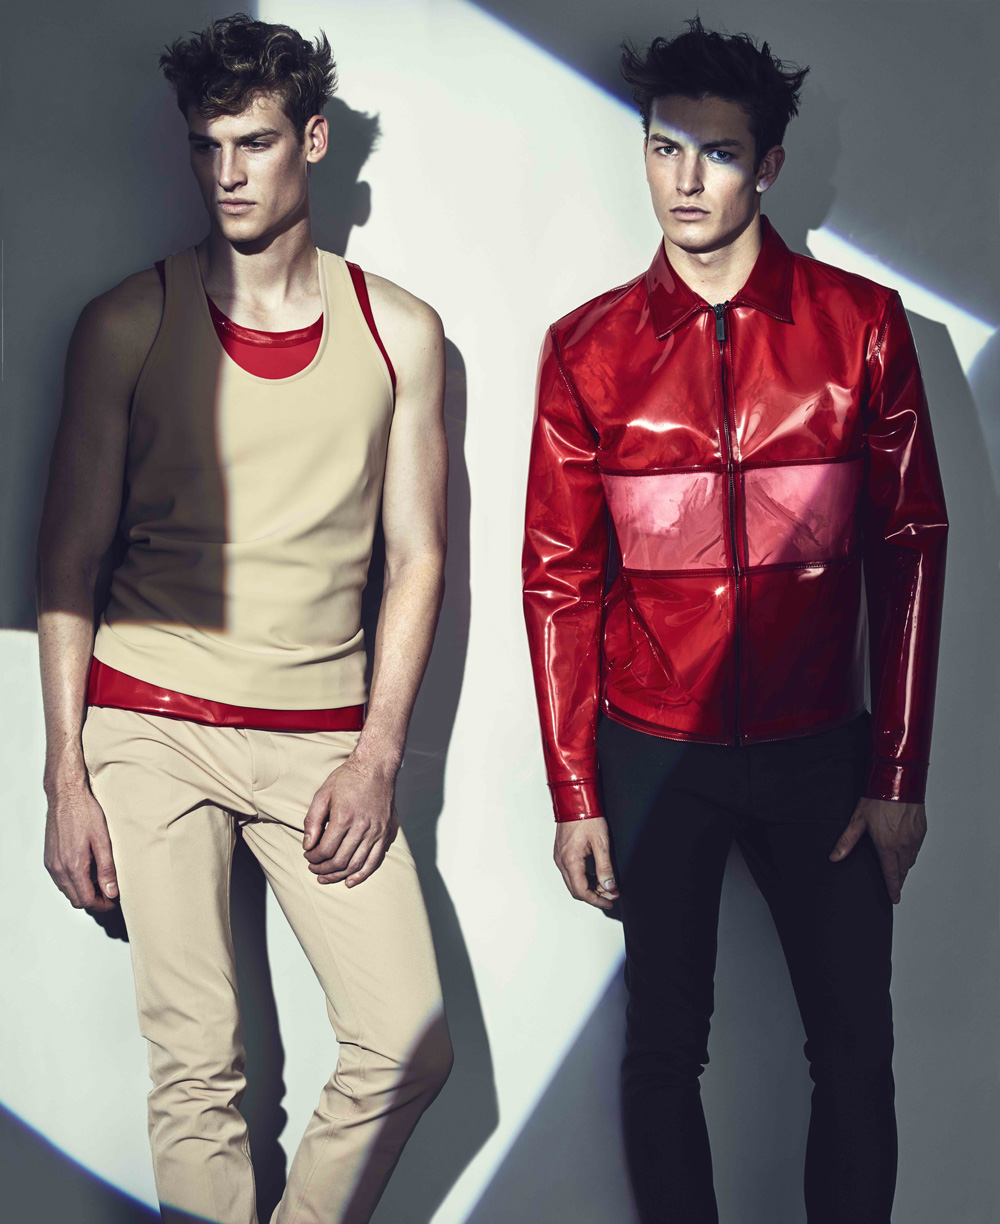 Fashion story inspired by 2015 by Mikael Schulz & Fashion Matt Bidgoli with models Joel Meacock @IMG& Oli Lacey @Re:Quest for ODDA 8 Decades issue.